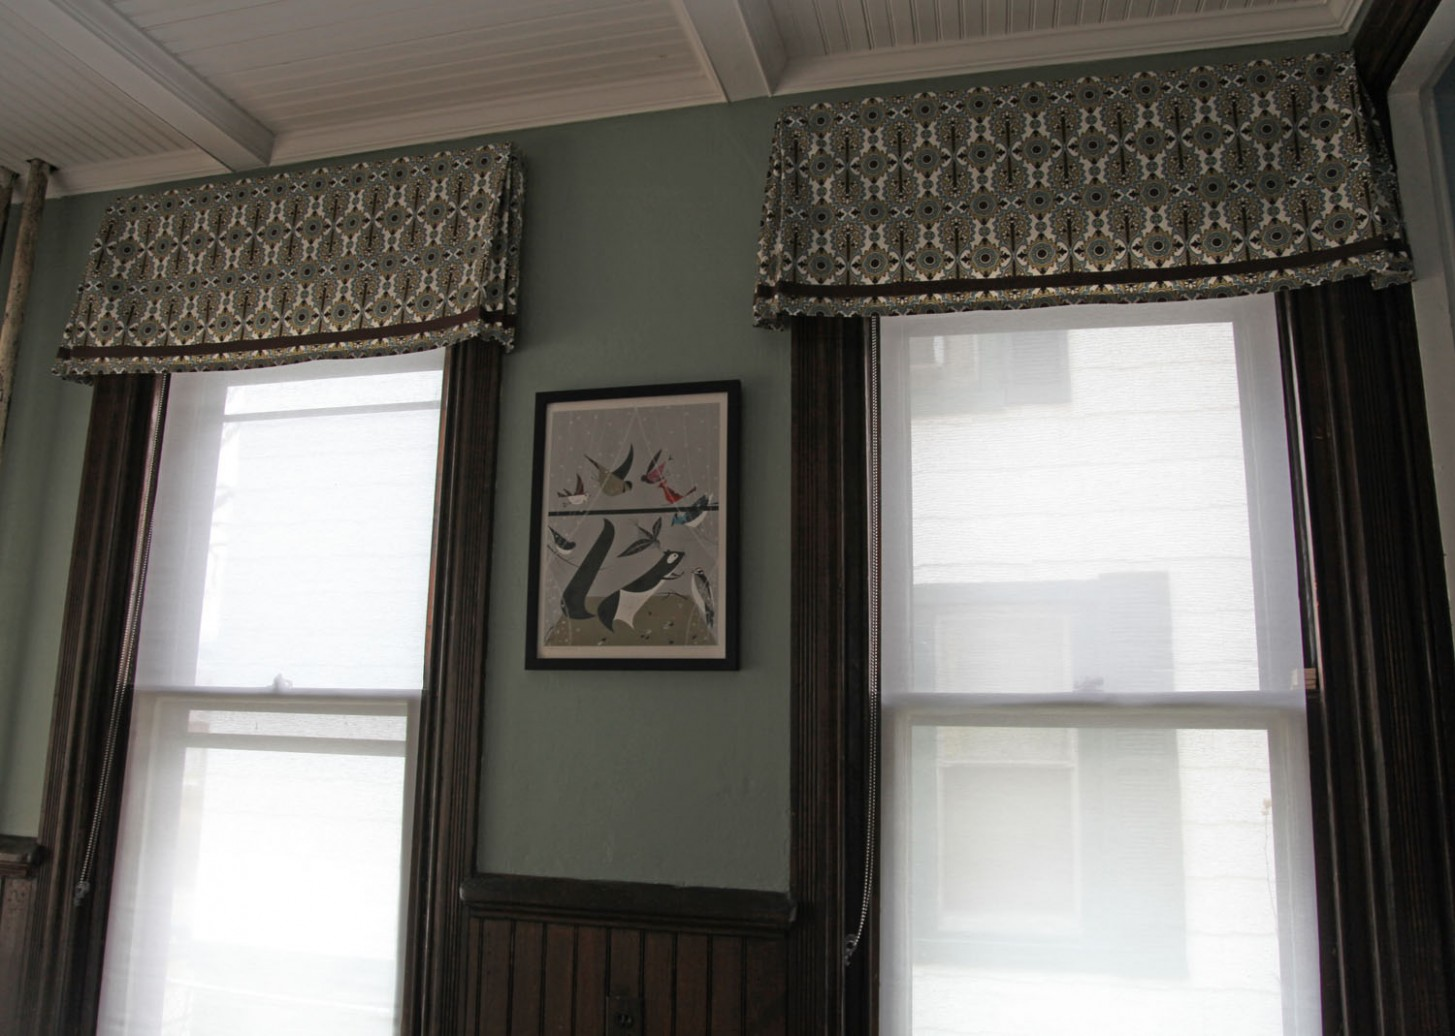 The Dining Room Windows: The Valances  Stately Kitsch - Dining Room Window Valance Ideas